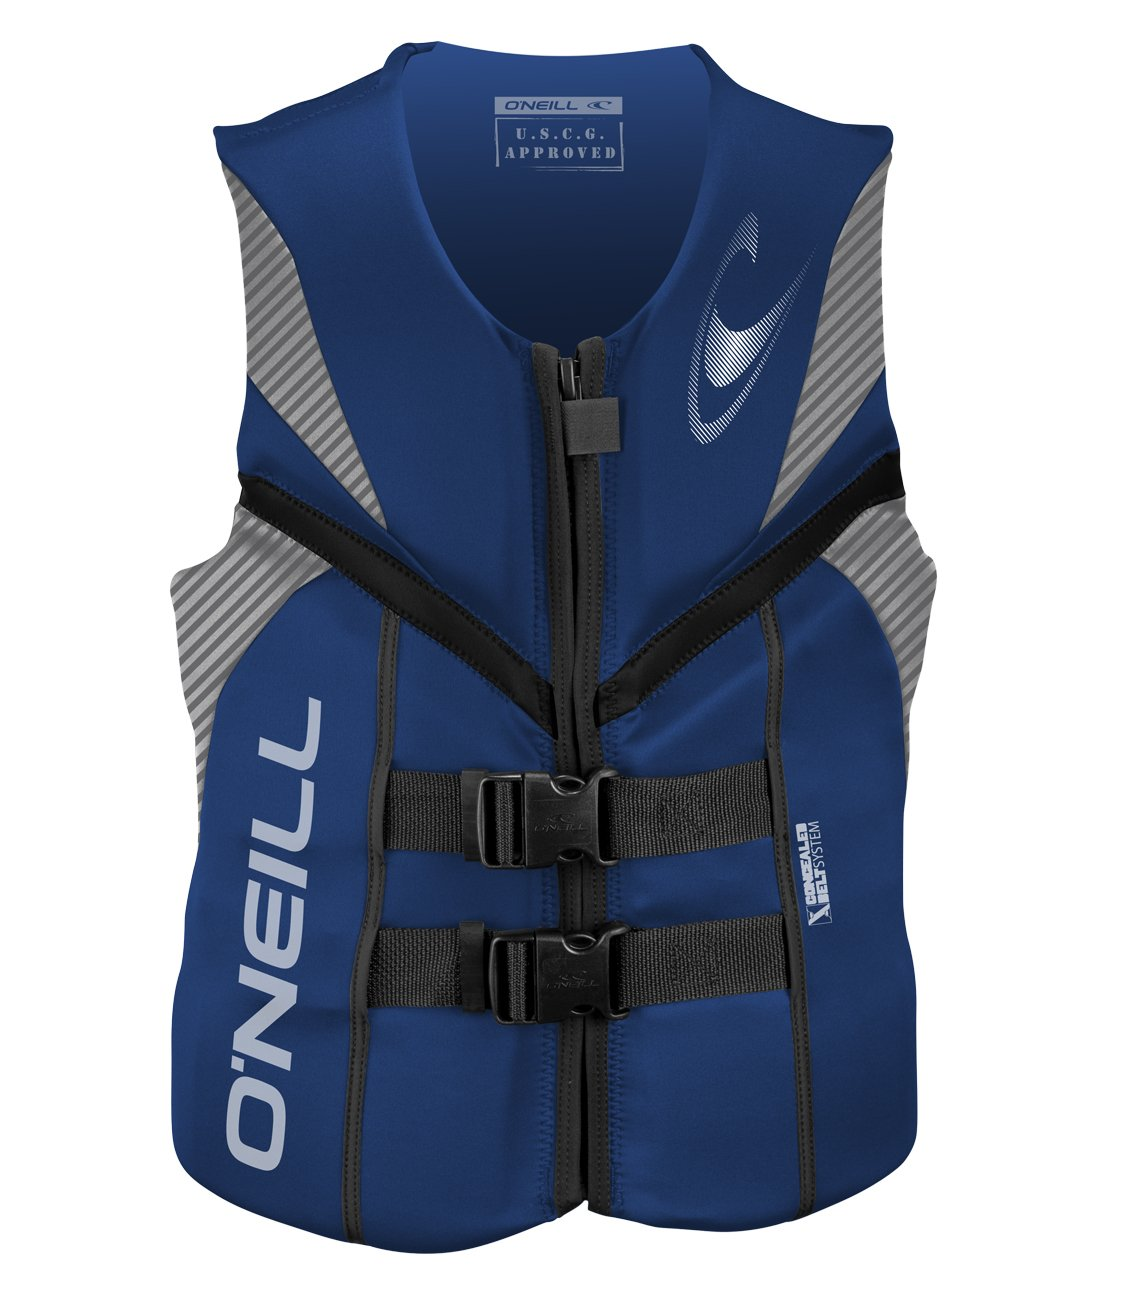 O'Neill   Men's Reactor USCG Life Vest,Pacific/Lunar/Black,Large by O'Neill Wetsuits